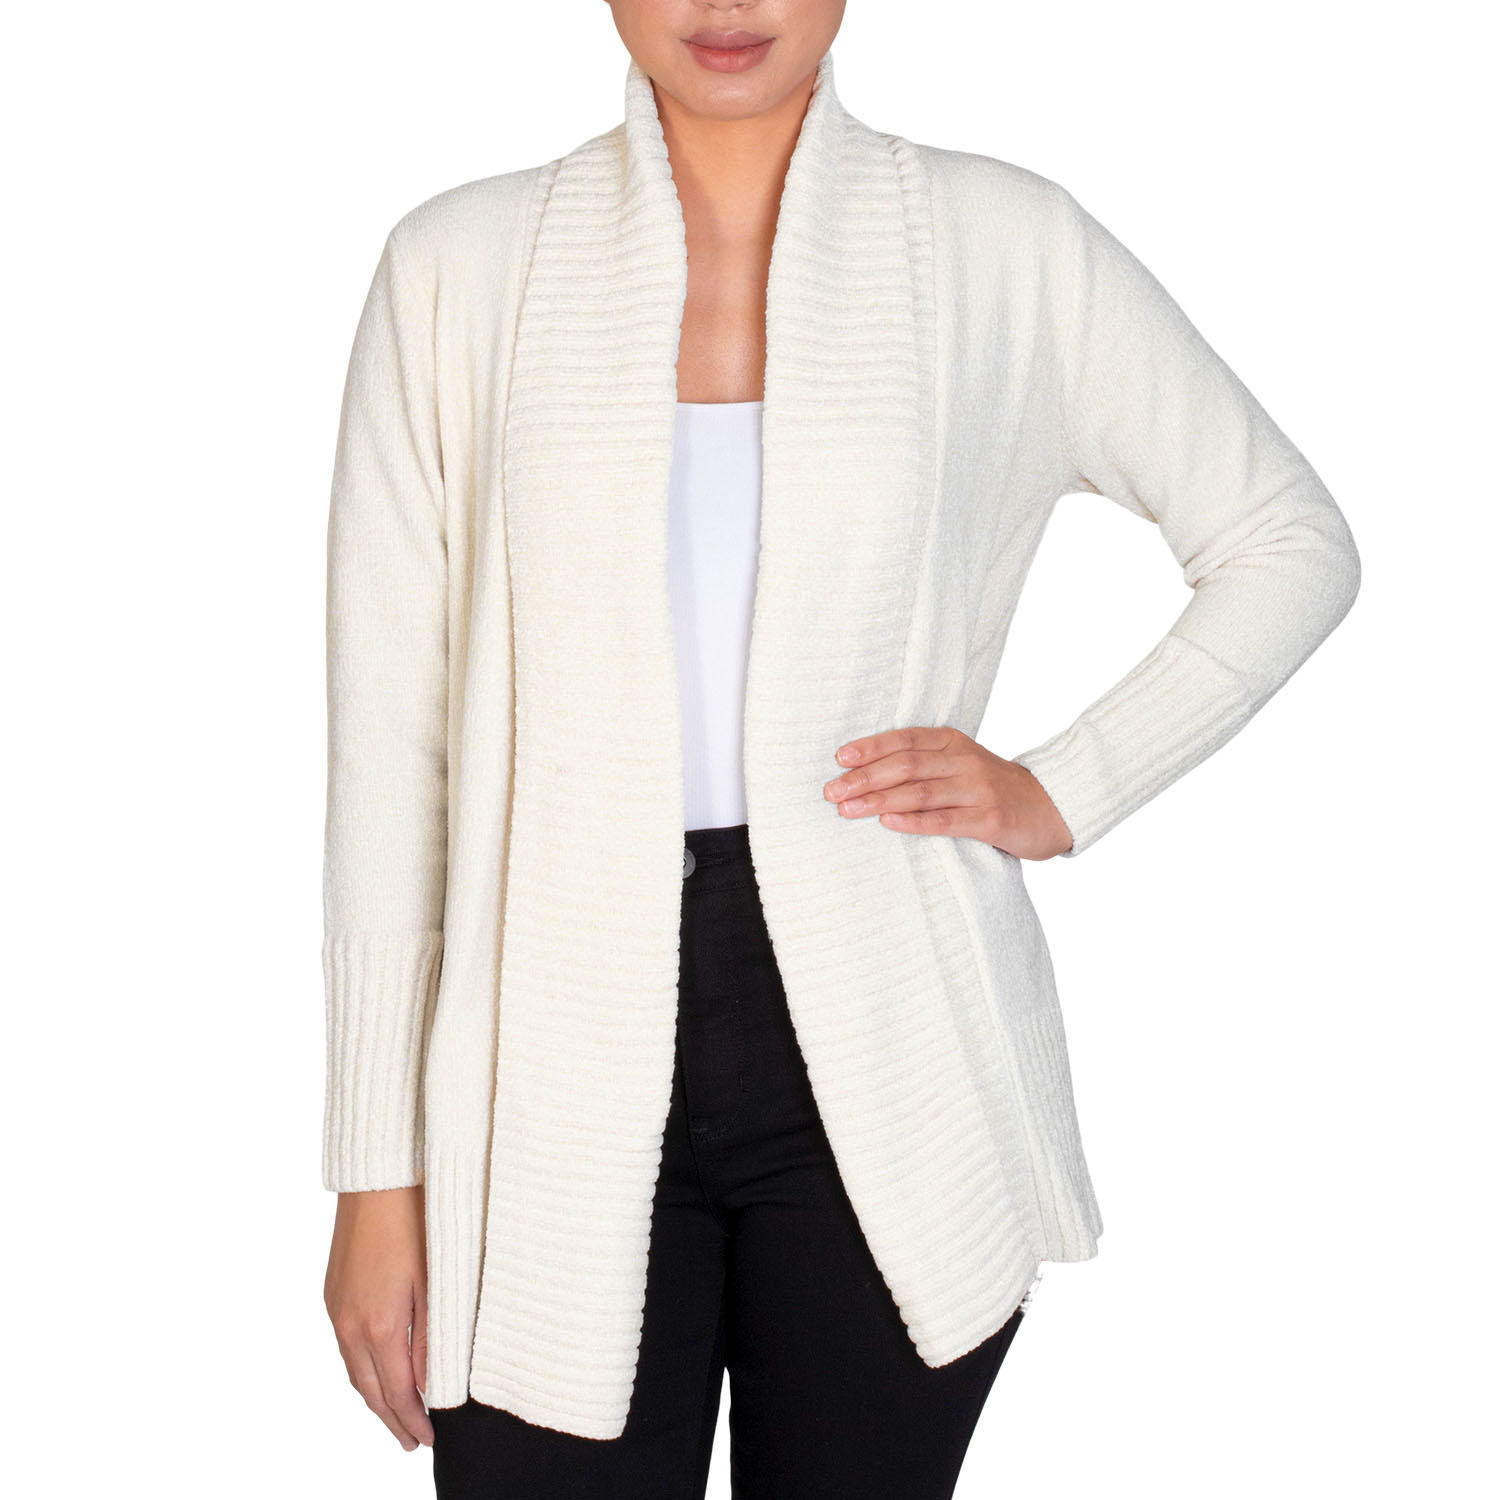 Model wearing the open cardigan, which has a shawl collar, in white